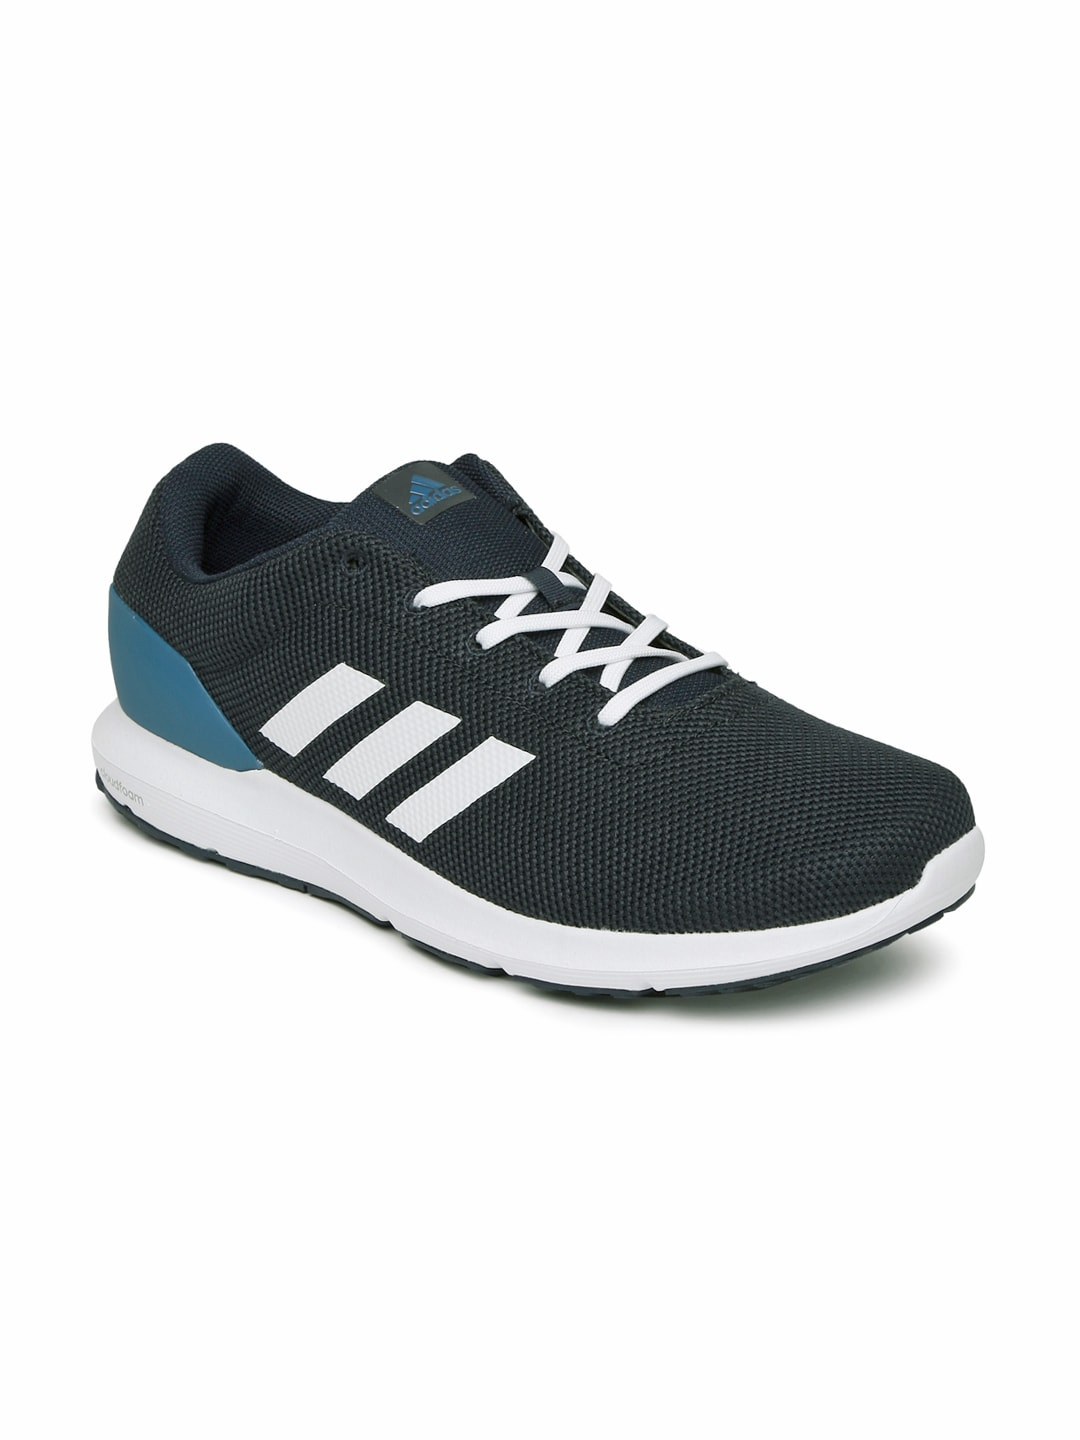 brand new d1c7b 336a9 Men Footwear Adidas Casual Shoes Sports - Buy Men Footwear Adidas Casual Shoes  Sports online in India